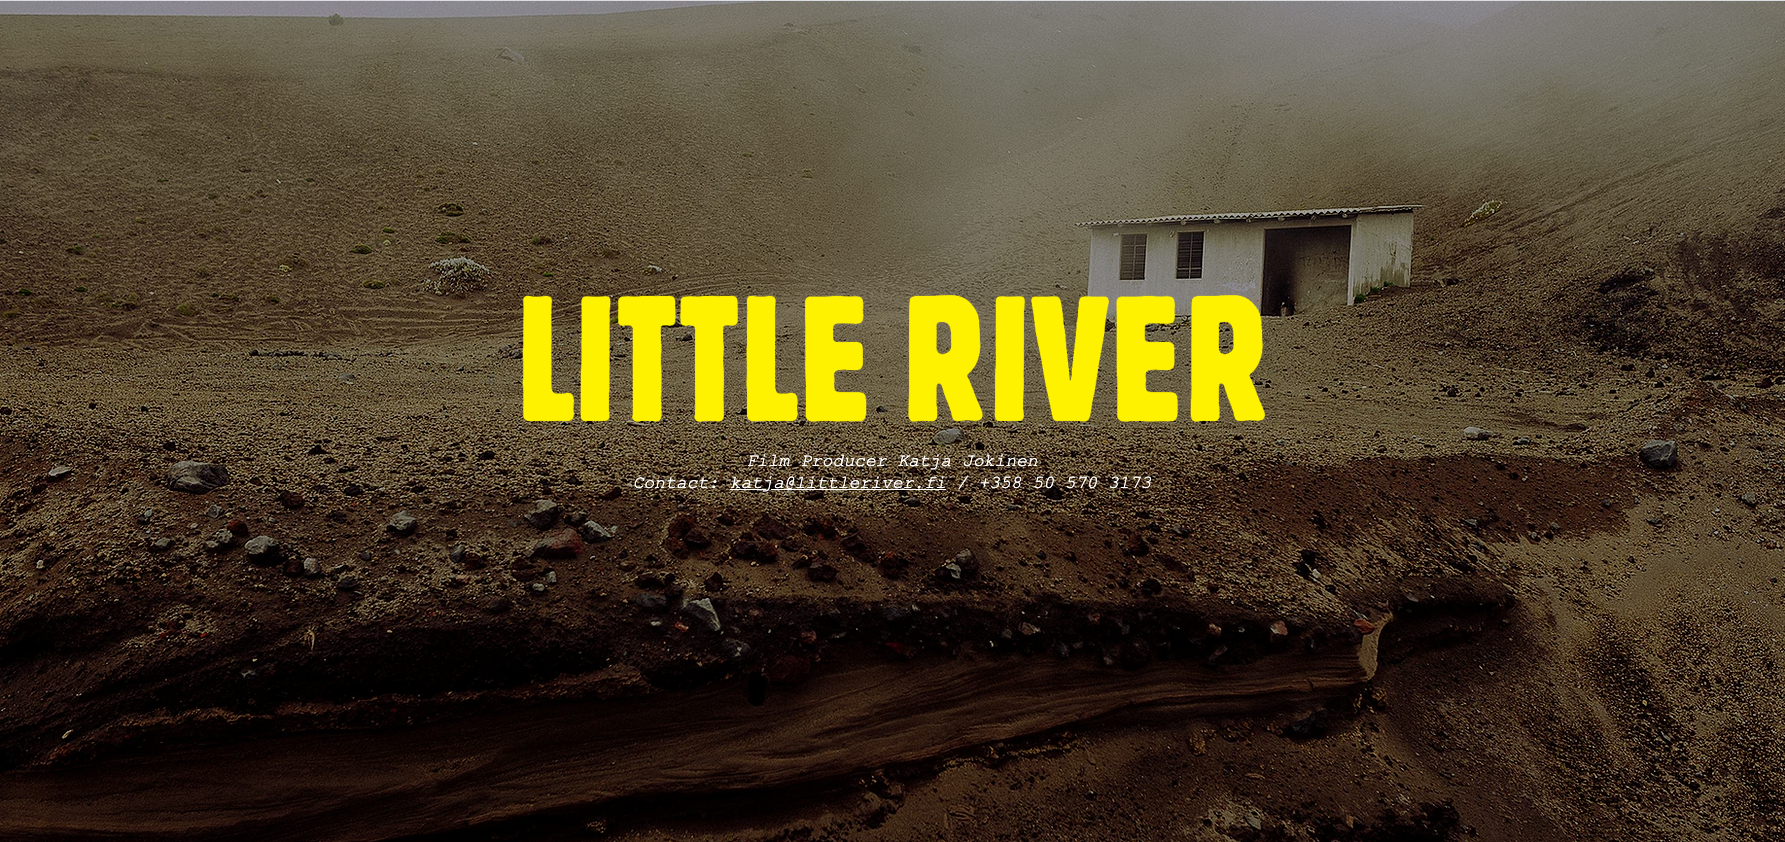 LITTLE RIVER OY